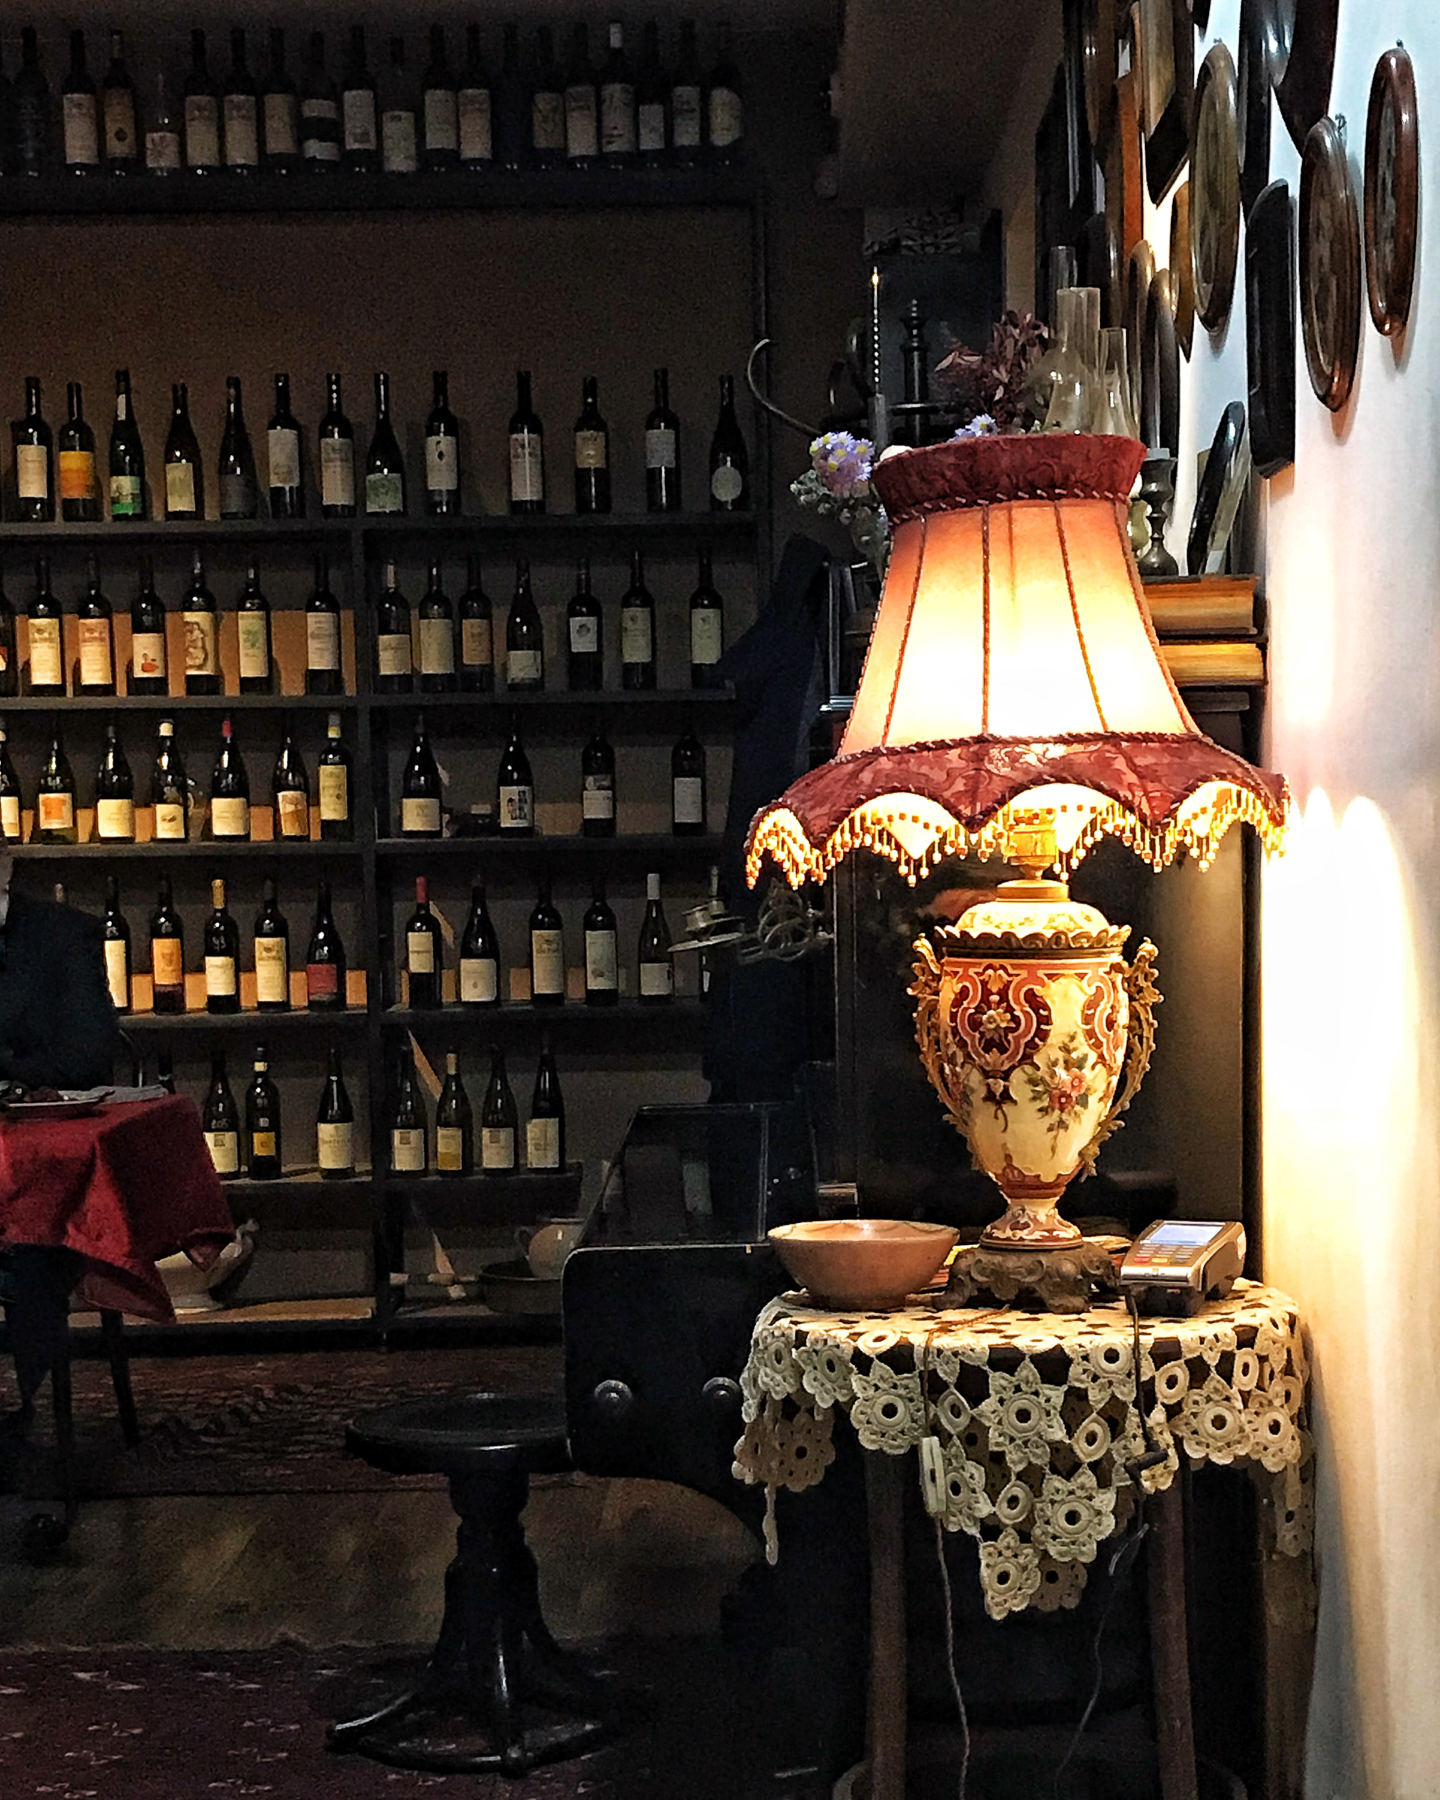 Asaphesha - trailblazer - This is the restaurant that brought to Tbilisi the influence of the Pheasant's Tears winery, one of the first in Georgia to gain a reputation abroad for its revival of modern Georgia's culinary traditions. An extensive natural wine selection plays beautifully off the sophisticated menu.